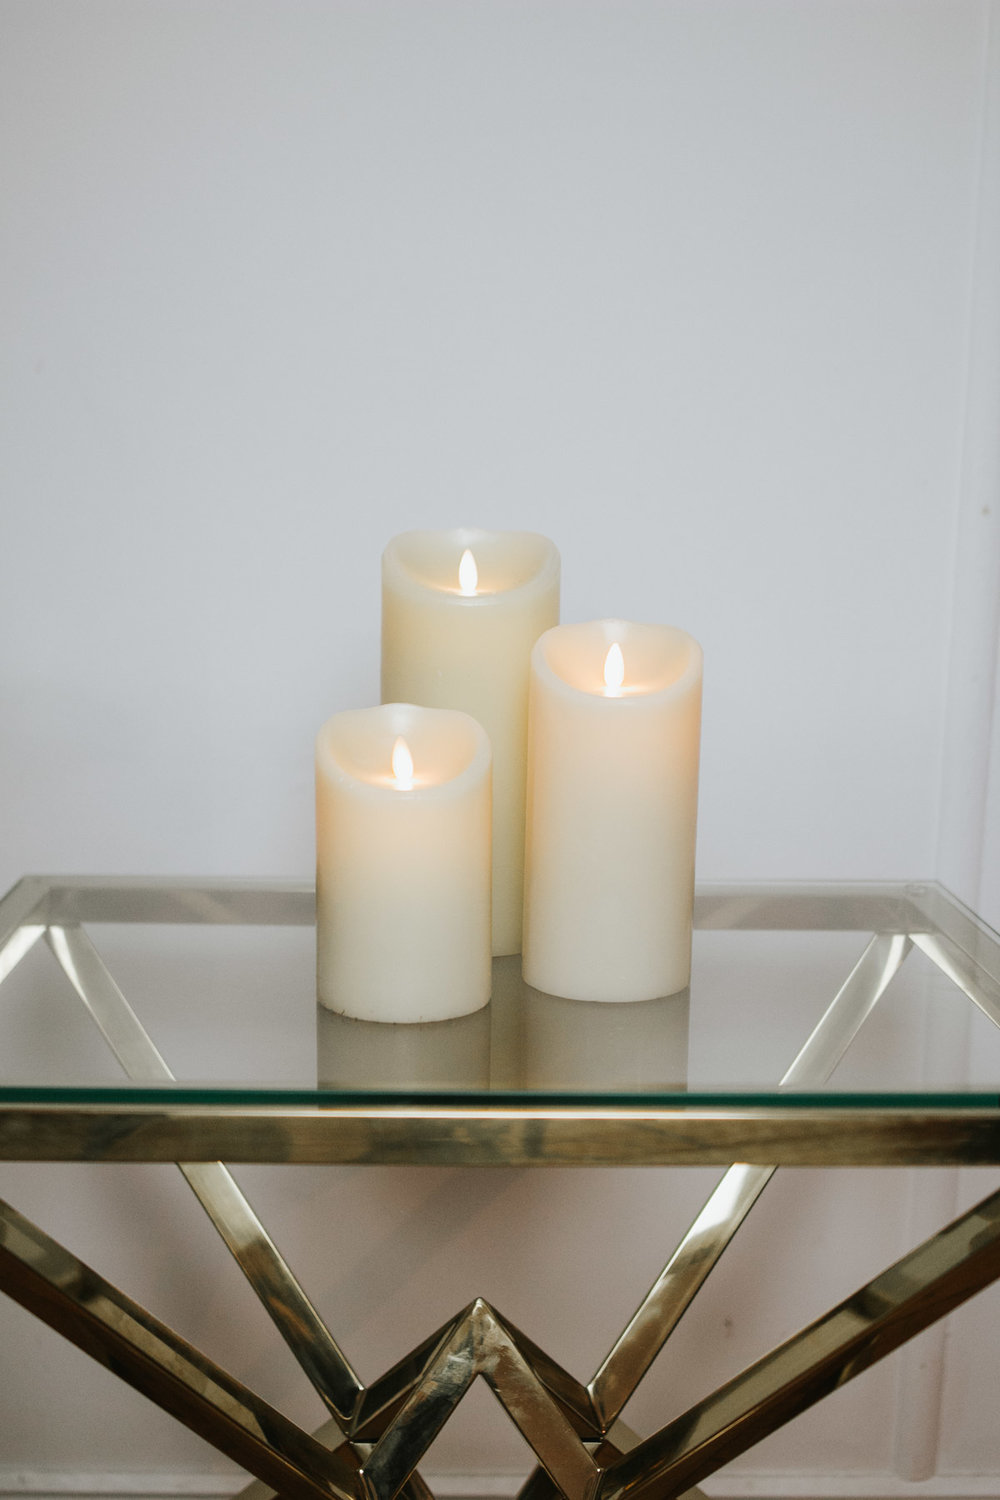 Avideas-Inventory-candles-linen-34.jpg